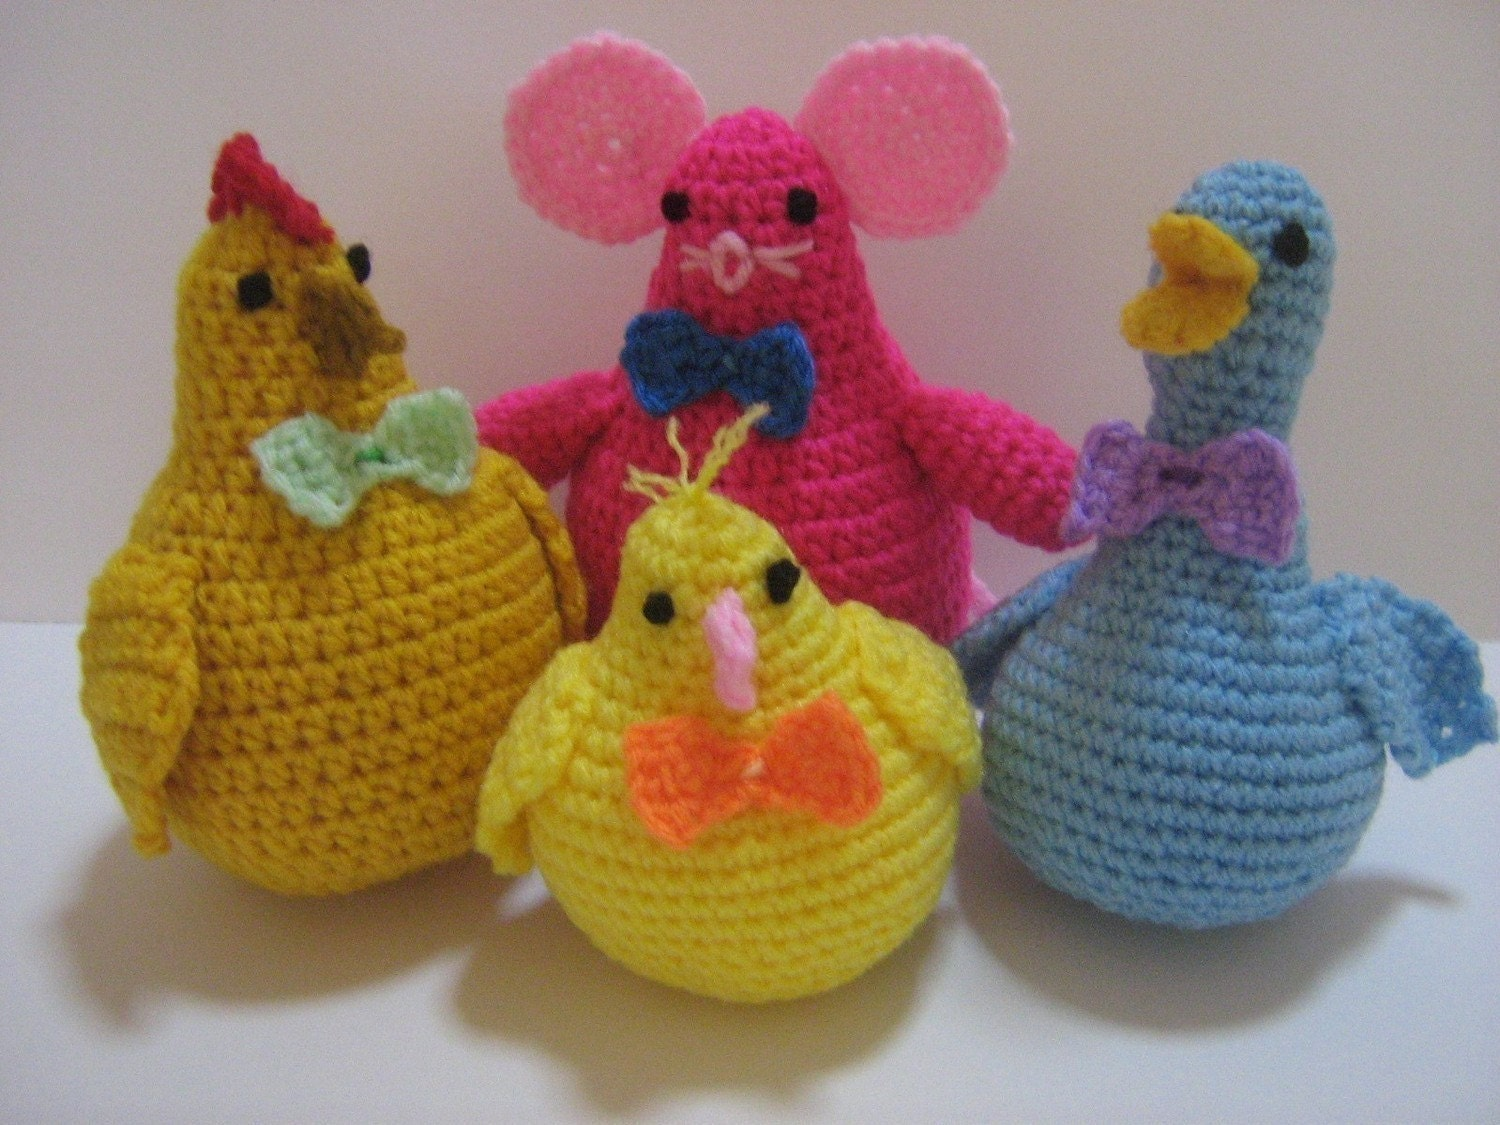 Crochet Patterns Animals : Amigurumi Crochet Pattern Animal Crochet Pattern PDF by melbangel